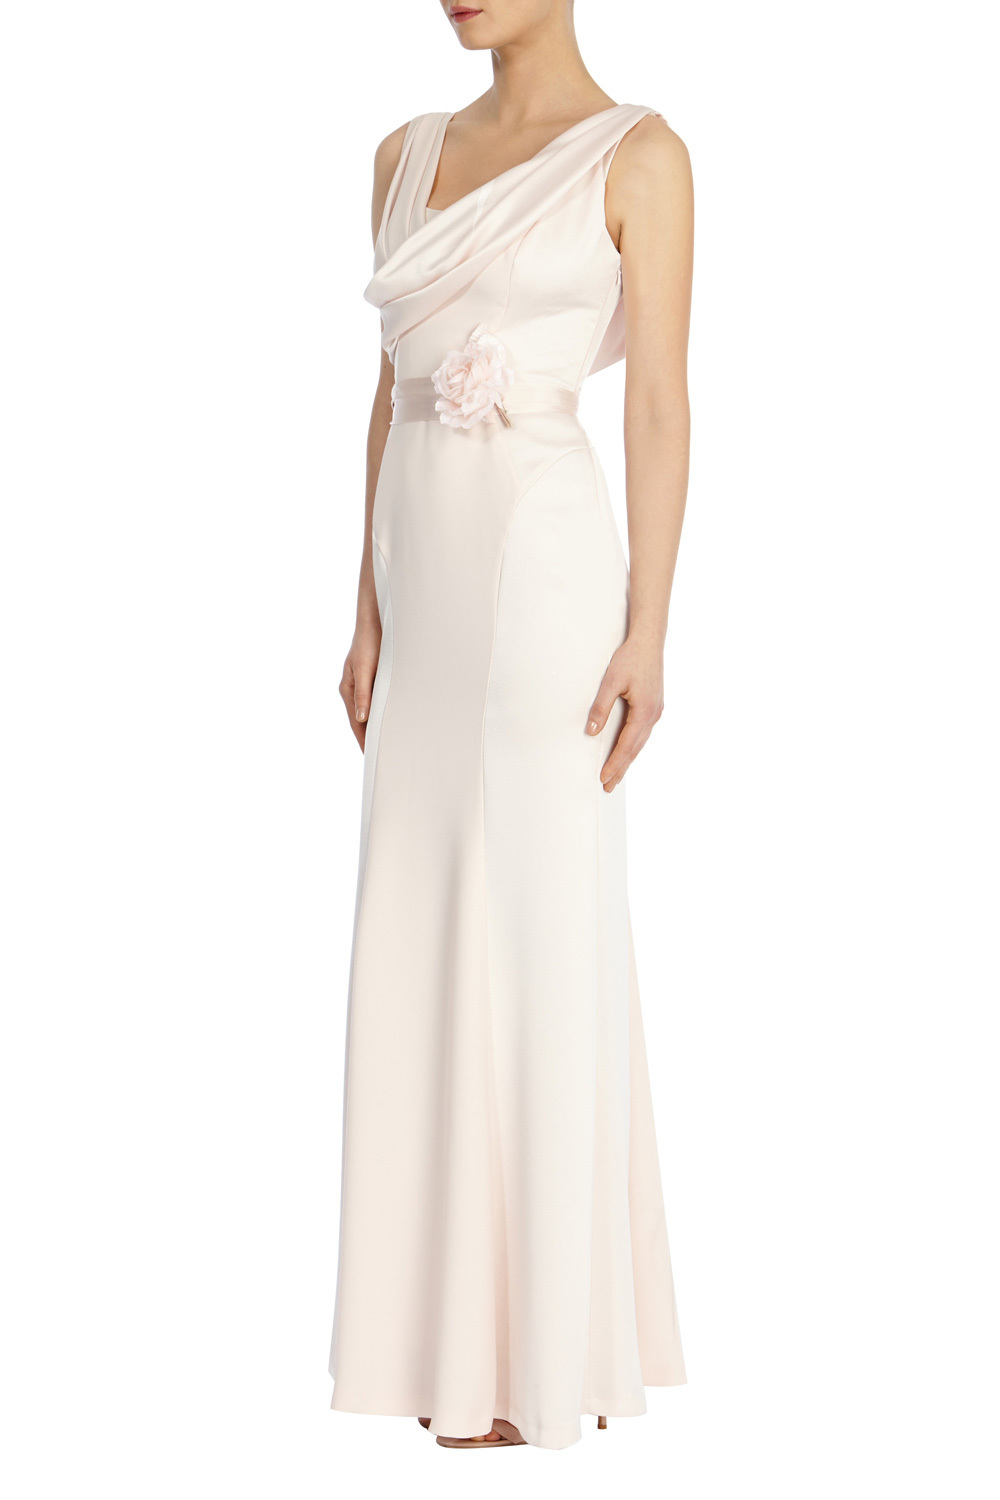 Mia Rae Maxi Dress - neckline: low v-neck; pattern: plain; sleeve style: sleeveless; style: maxi dress; waist detail: belted waist/tie at waist/drawstring; predominant colour: ivory/cream; occasions: evening; length: floor length; fit: body skimming; fibres: polyester/polyamide - 100%; sleeve length: sleeveless; pattern type: fabric; texture group: jersey - stretchy/drapey; season: s/s 2016; wardrobe: event